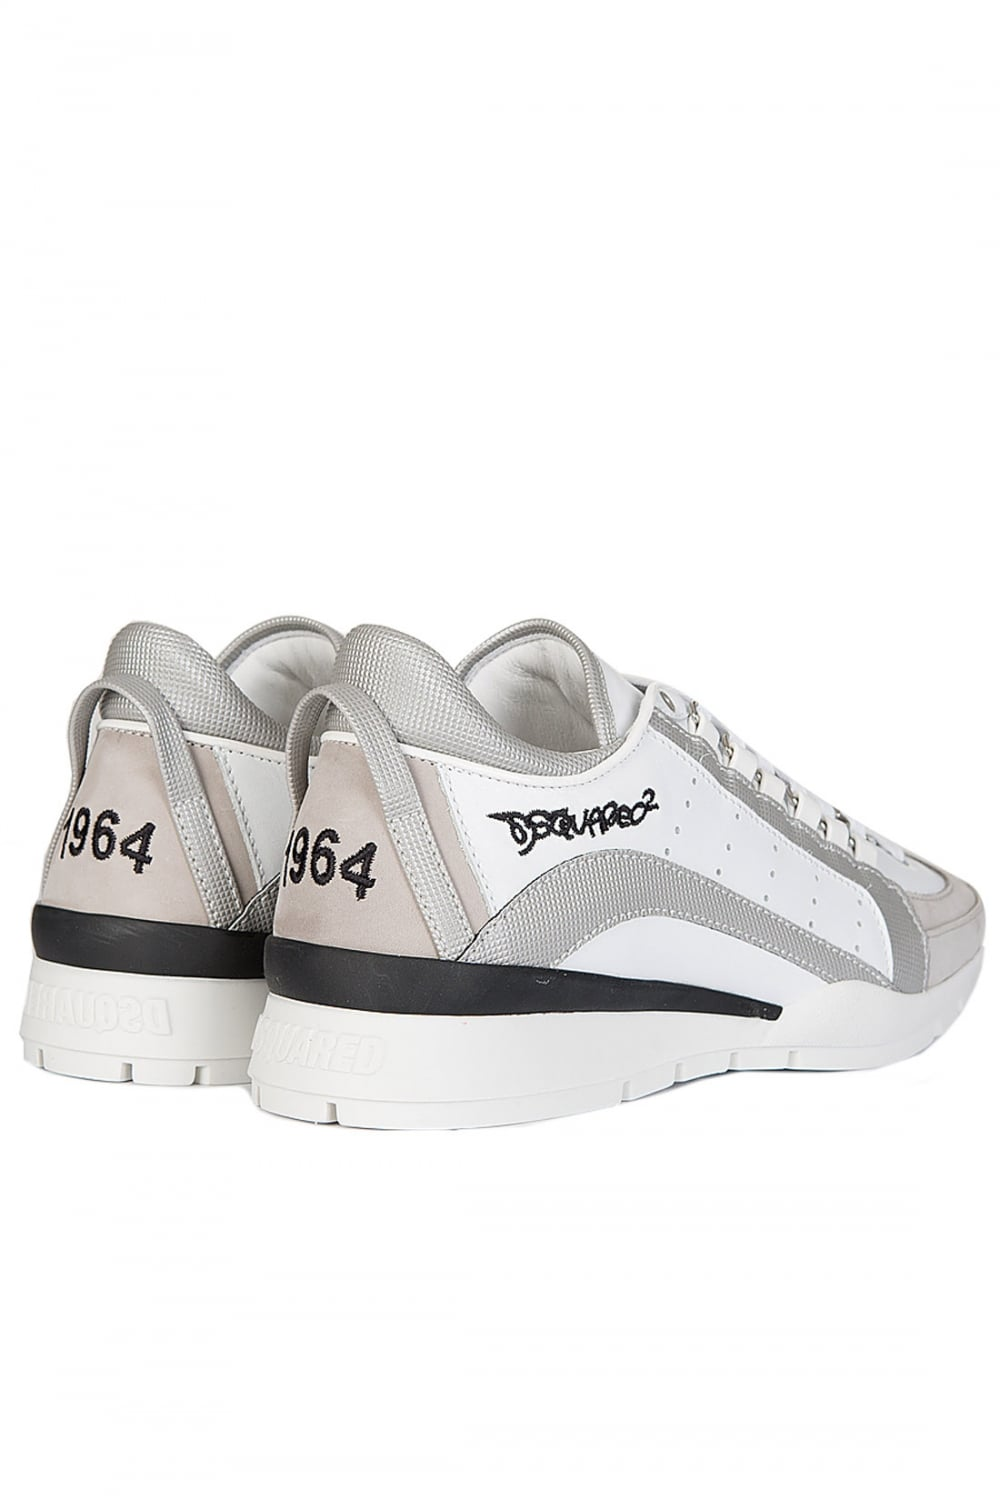 dsquared classic sneaker dsquared from circle fashion uk. Black Bedroom Furniture Sets. Home Design Ideas